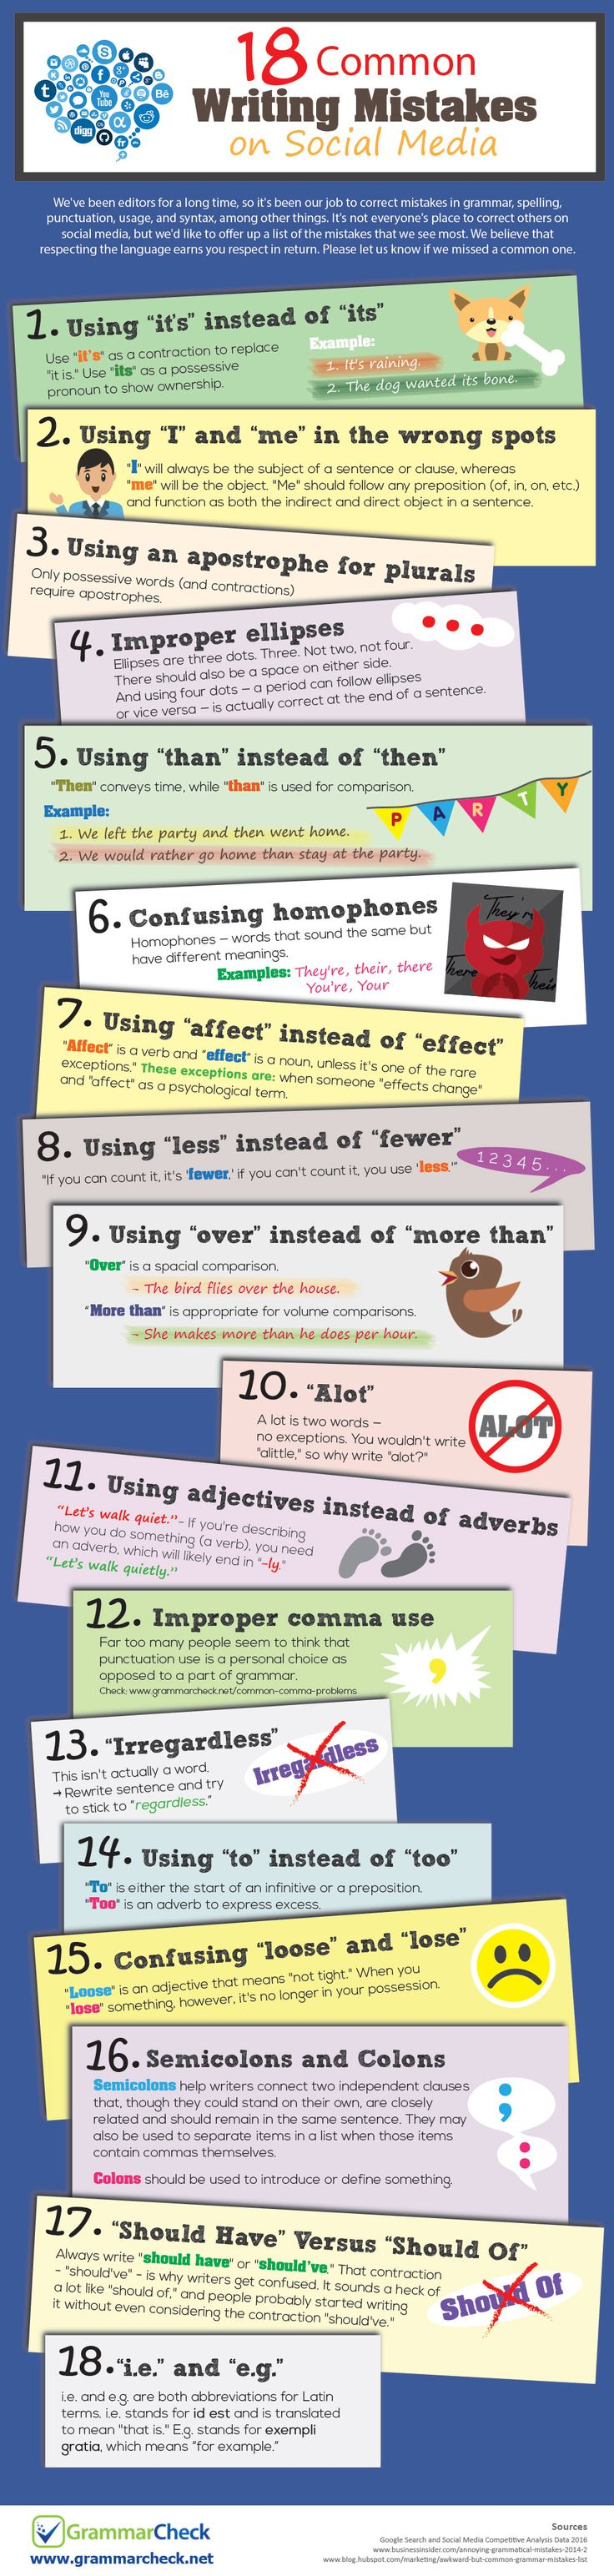 18 Common Writing Mistakes on Social Media (Infographic) http://jrstudioweb.com/diseno-grafico/diseno-de-logotipos/